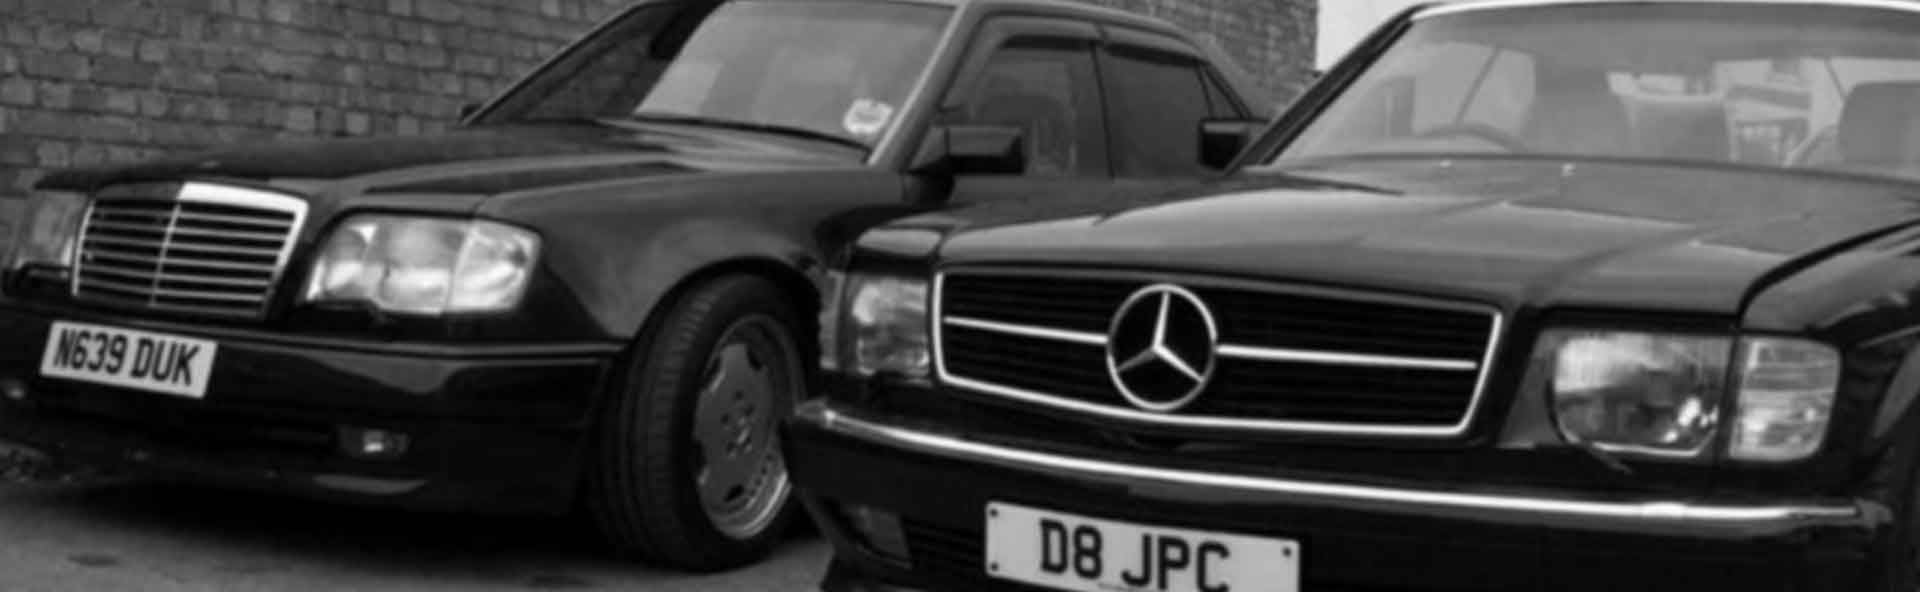 Mercedes at SS Motors In Weybridge Surrey Image 2